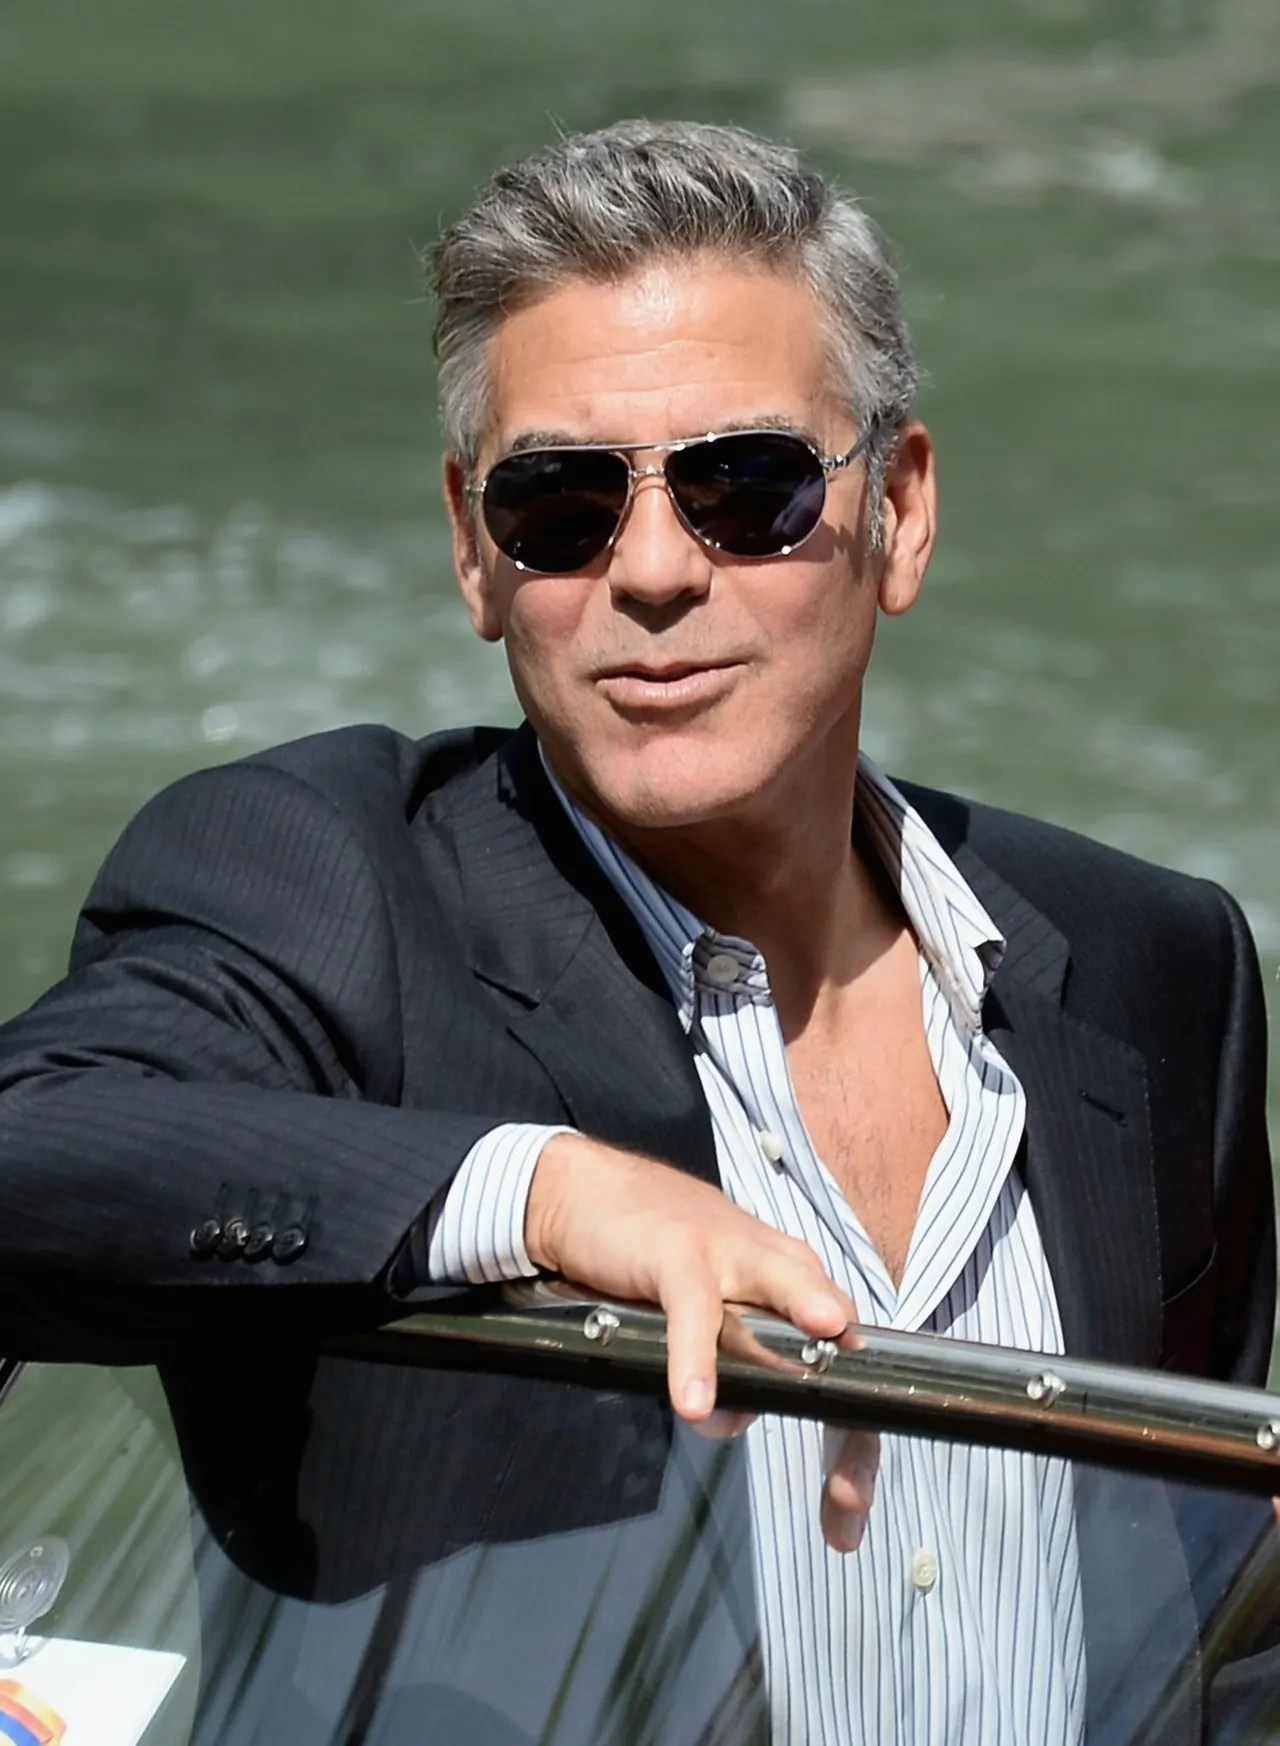 George Clooney Engagement to Amal Alamuddin  What Made Him Commit     george clooney single millionaires